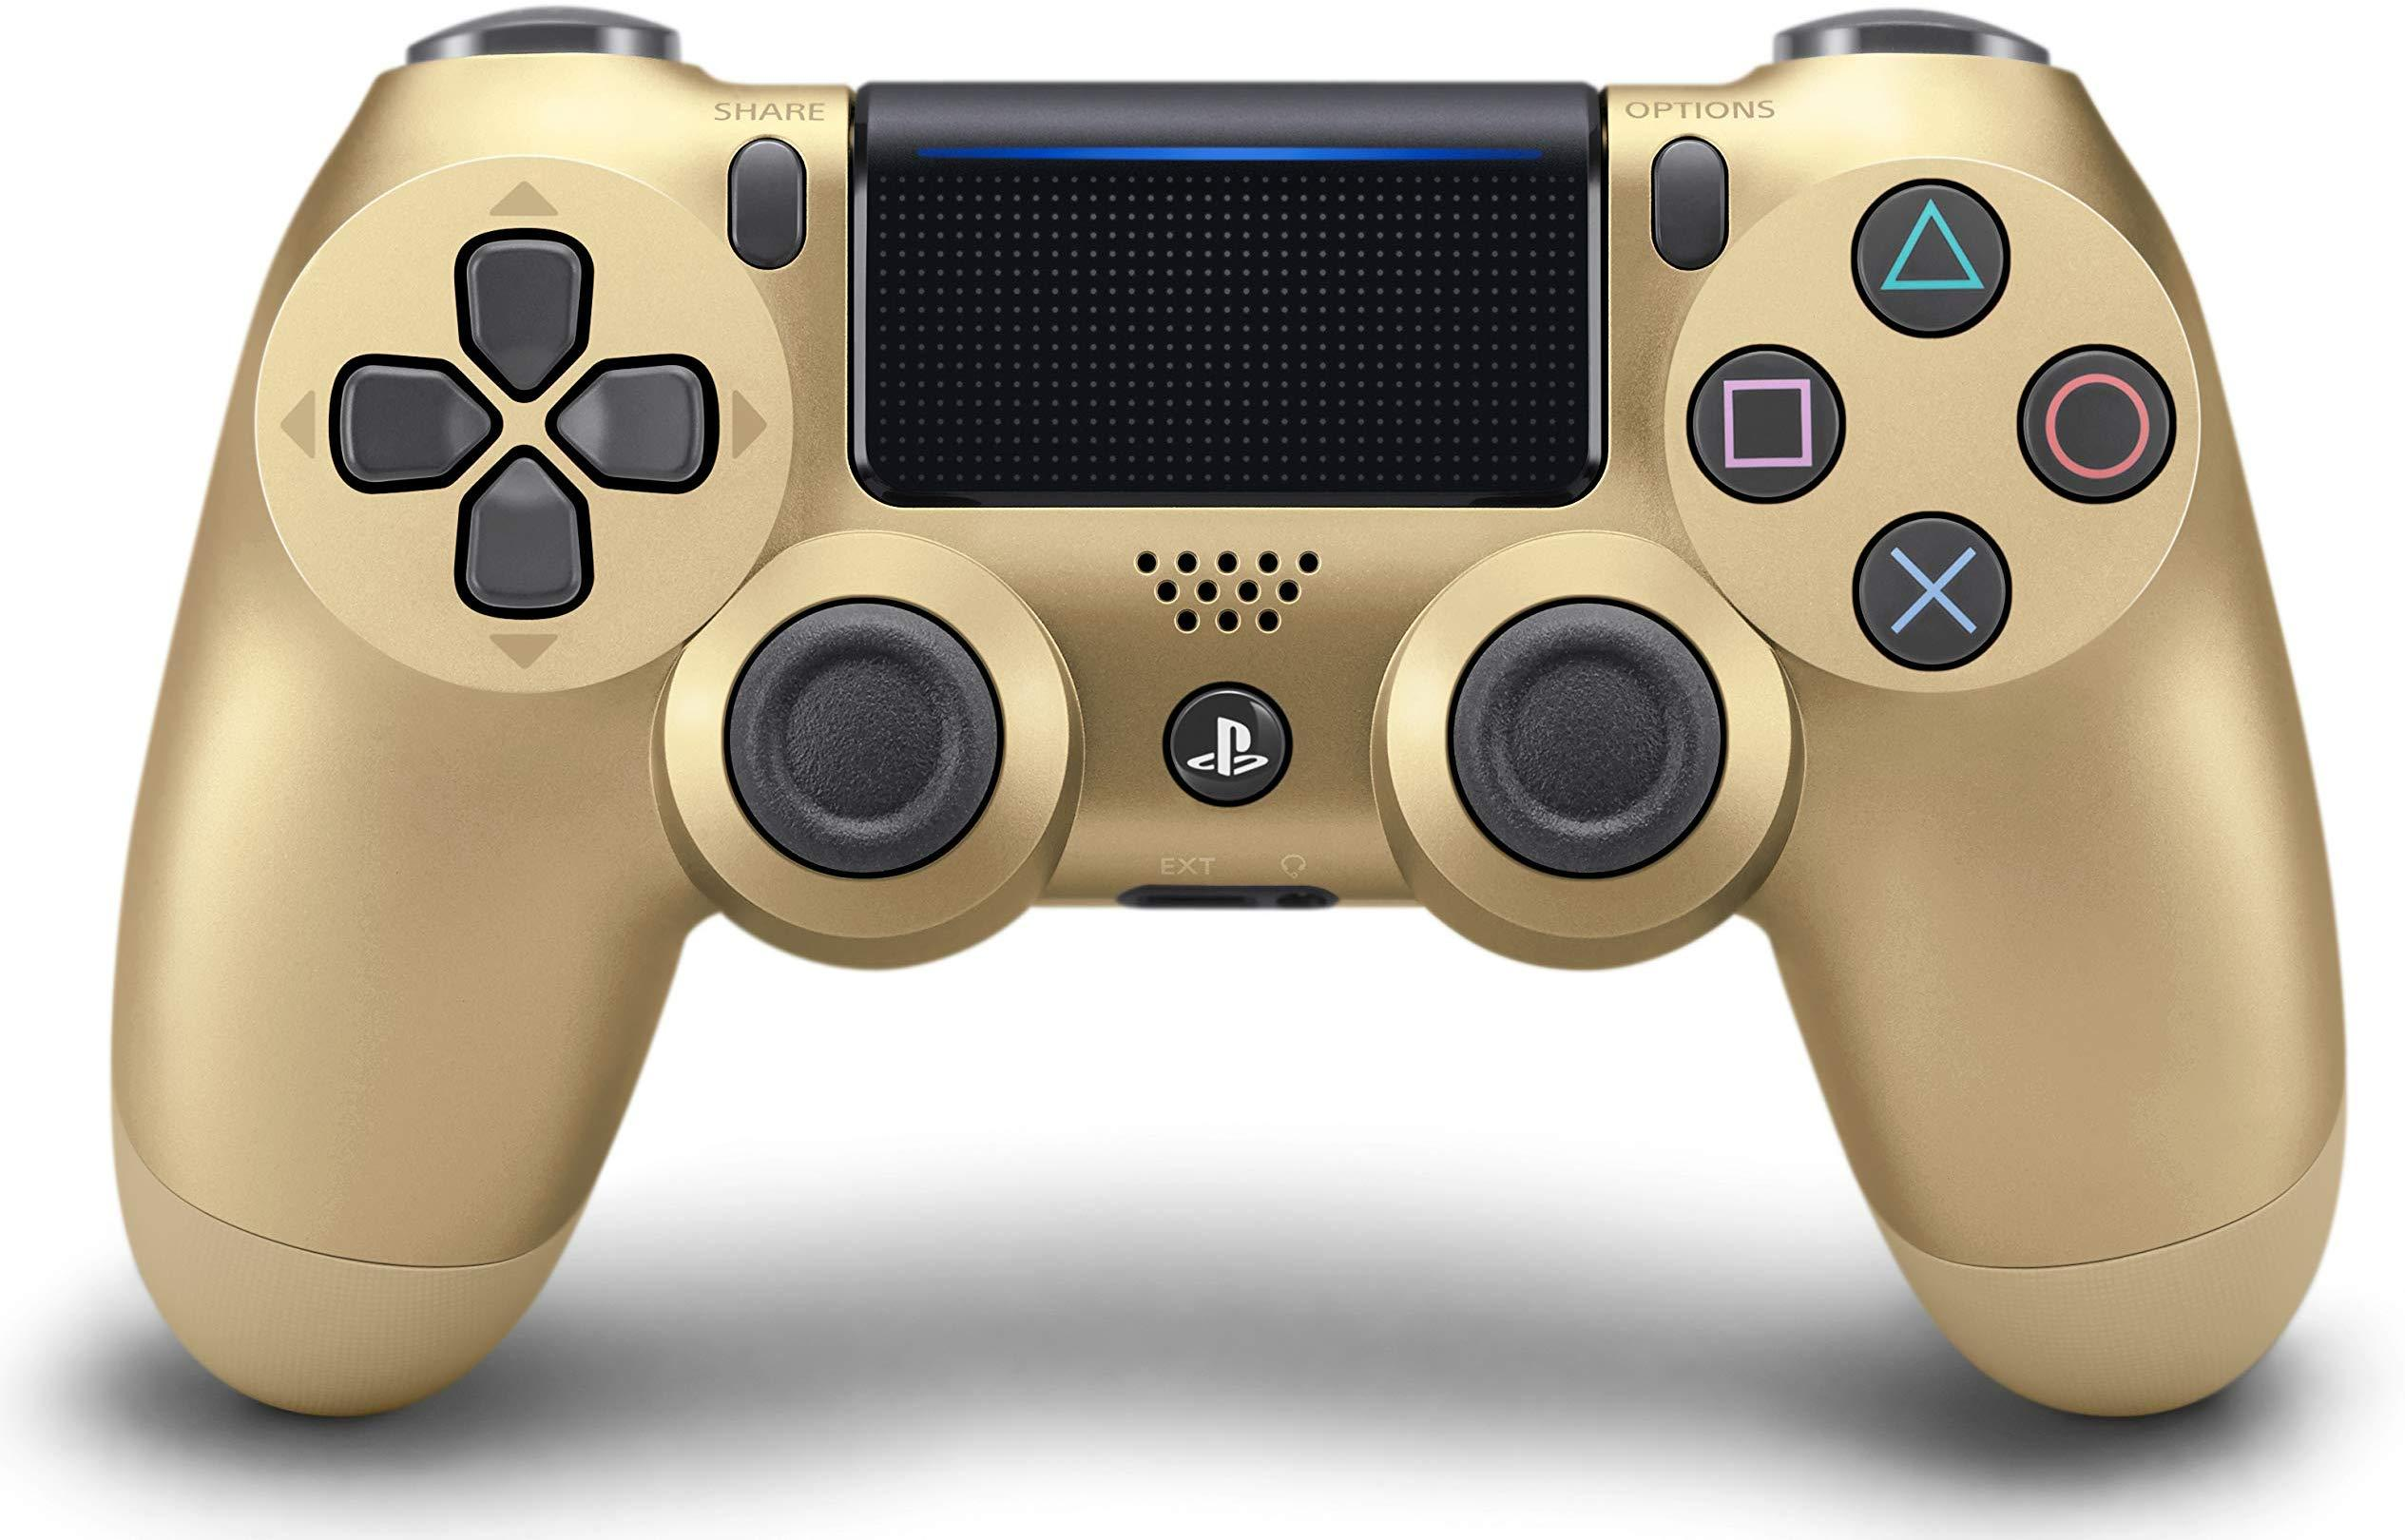 DualShock 4 Wireless Controller for PlayStation 4 - Gold (Refurb)